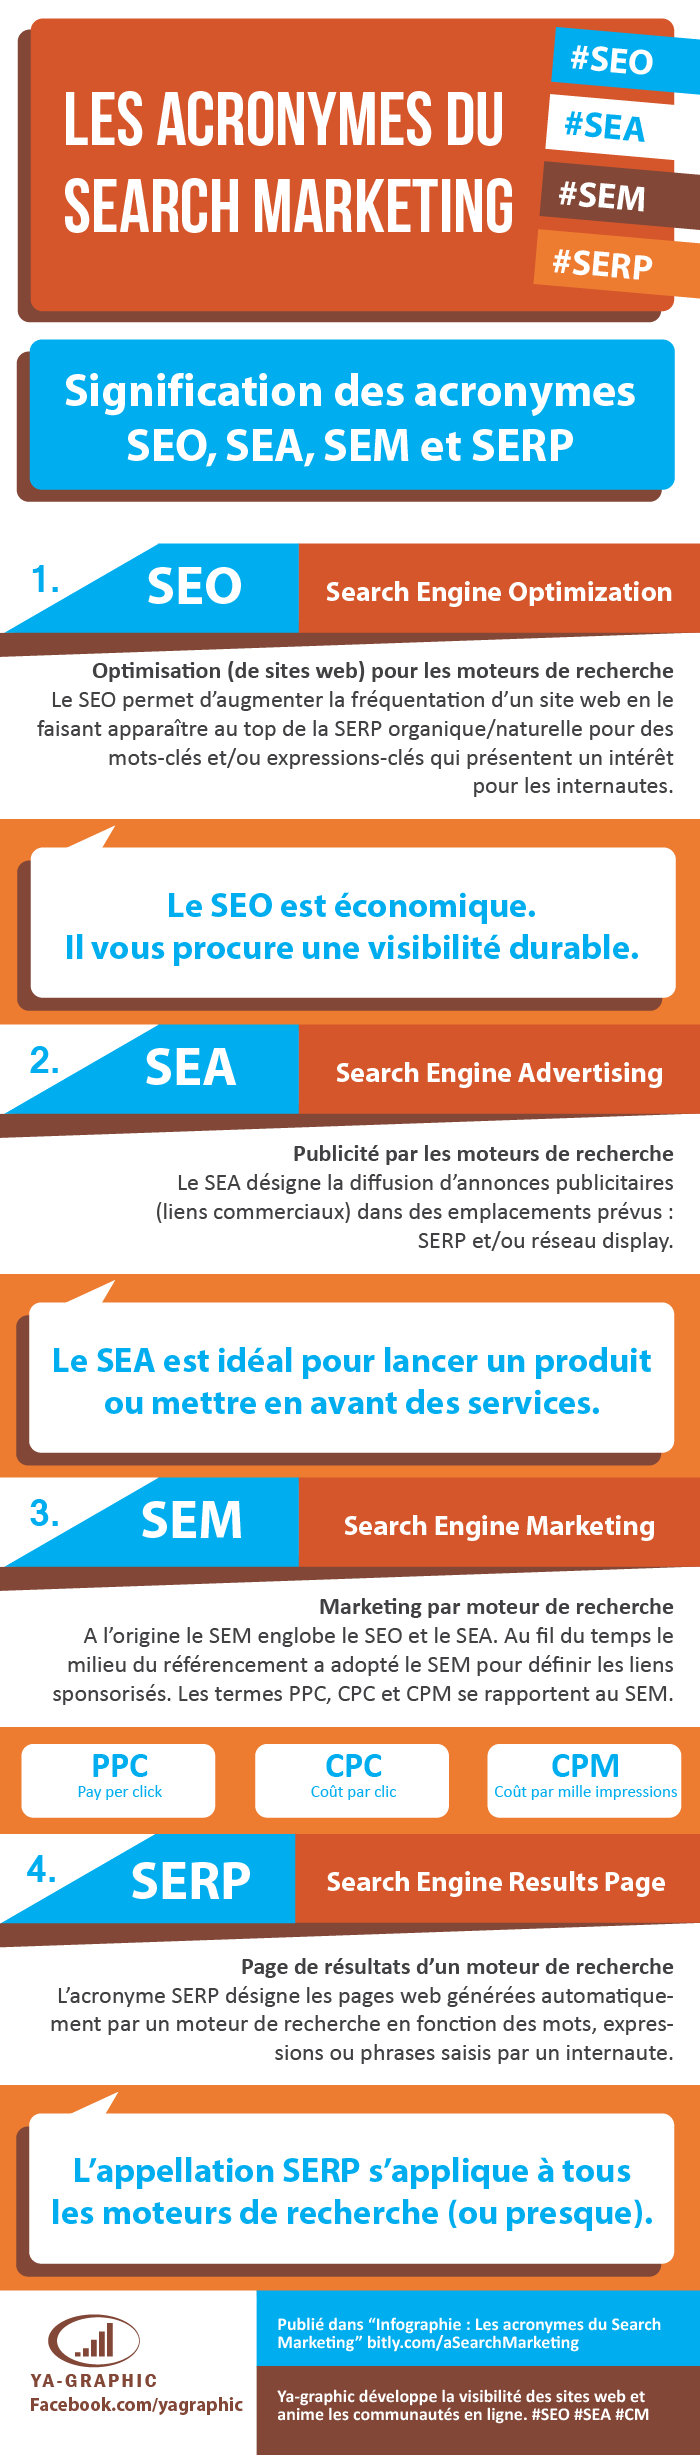 Infographie : acronymes du Search Marketing